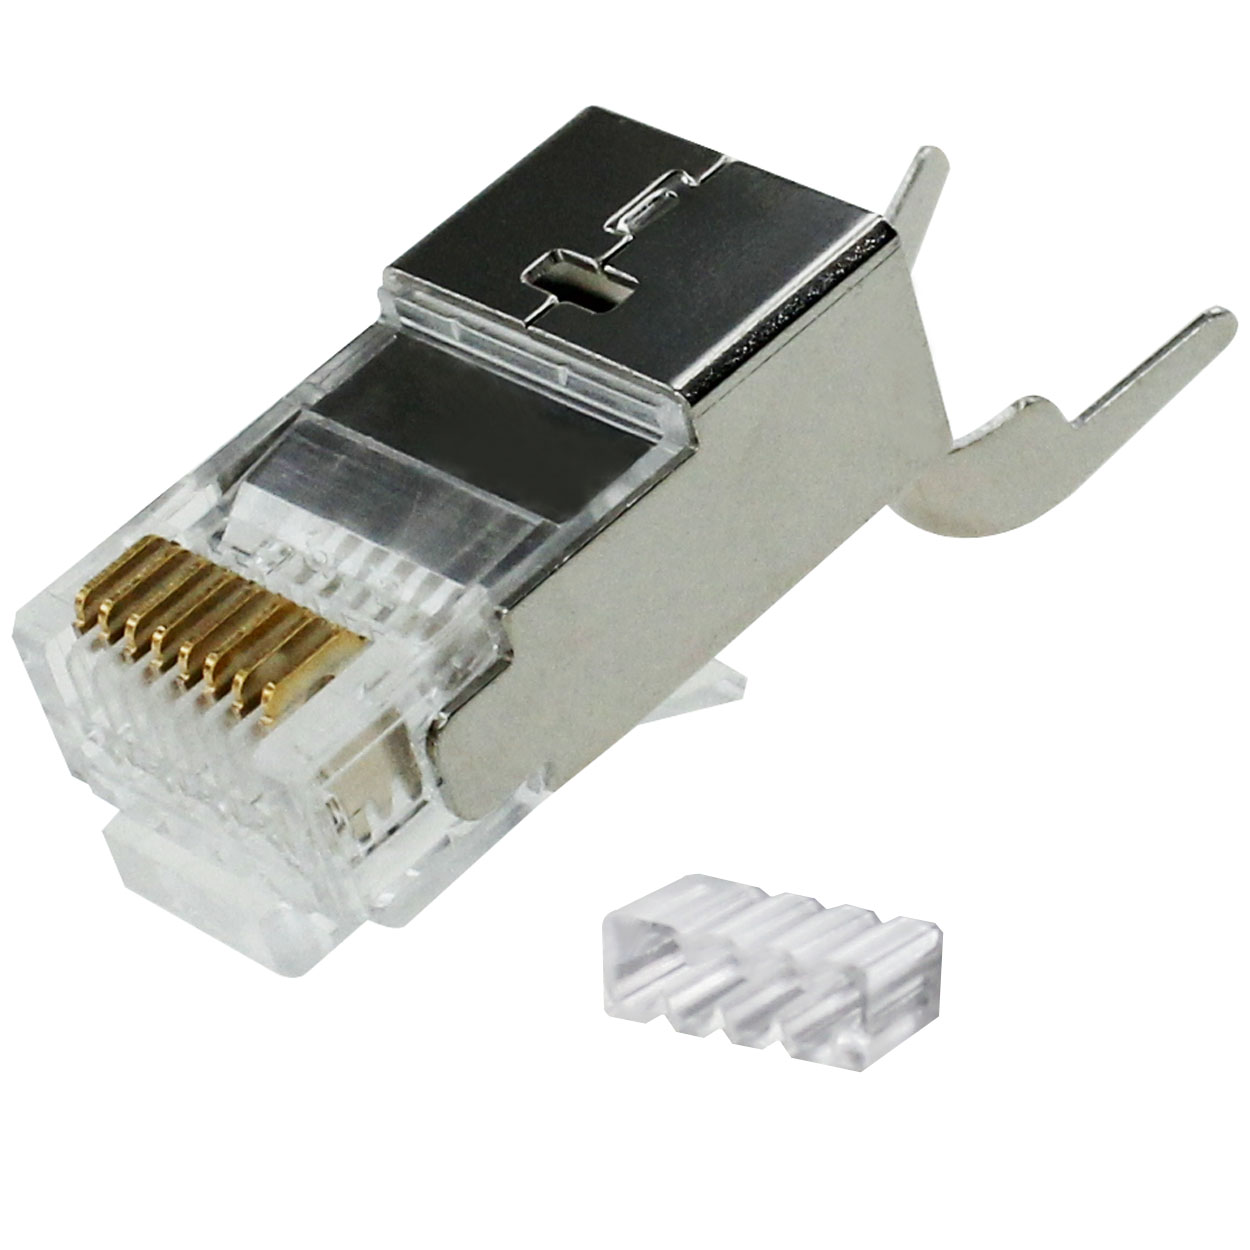 RJ45 Cat6a Shielded Modular Plug (2pcs Type) for Stranded / Solid Wire Cable 23-24AWG, Insulation Diameter OD: 1.5mm - 50pcs/pack